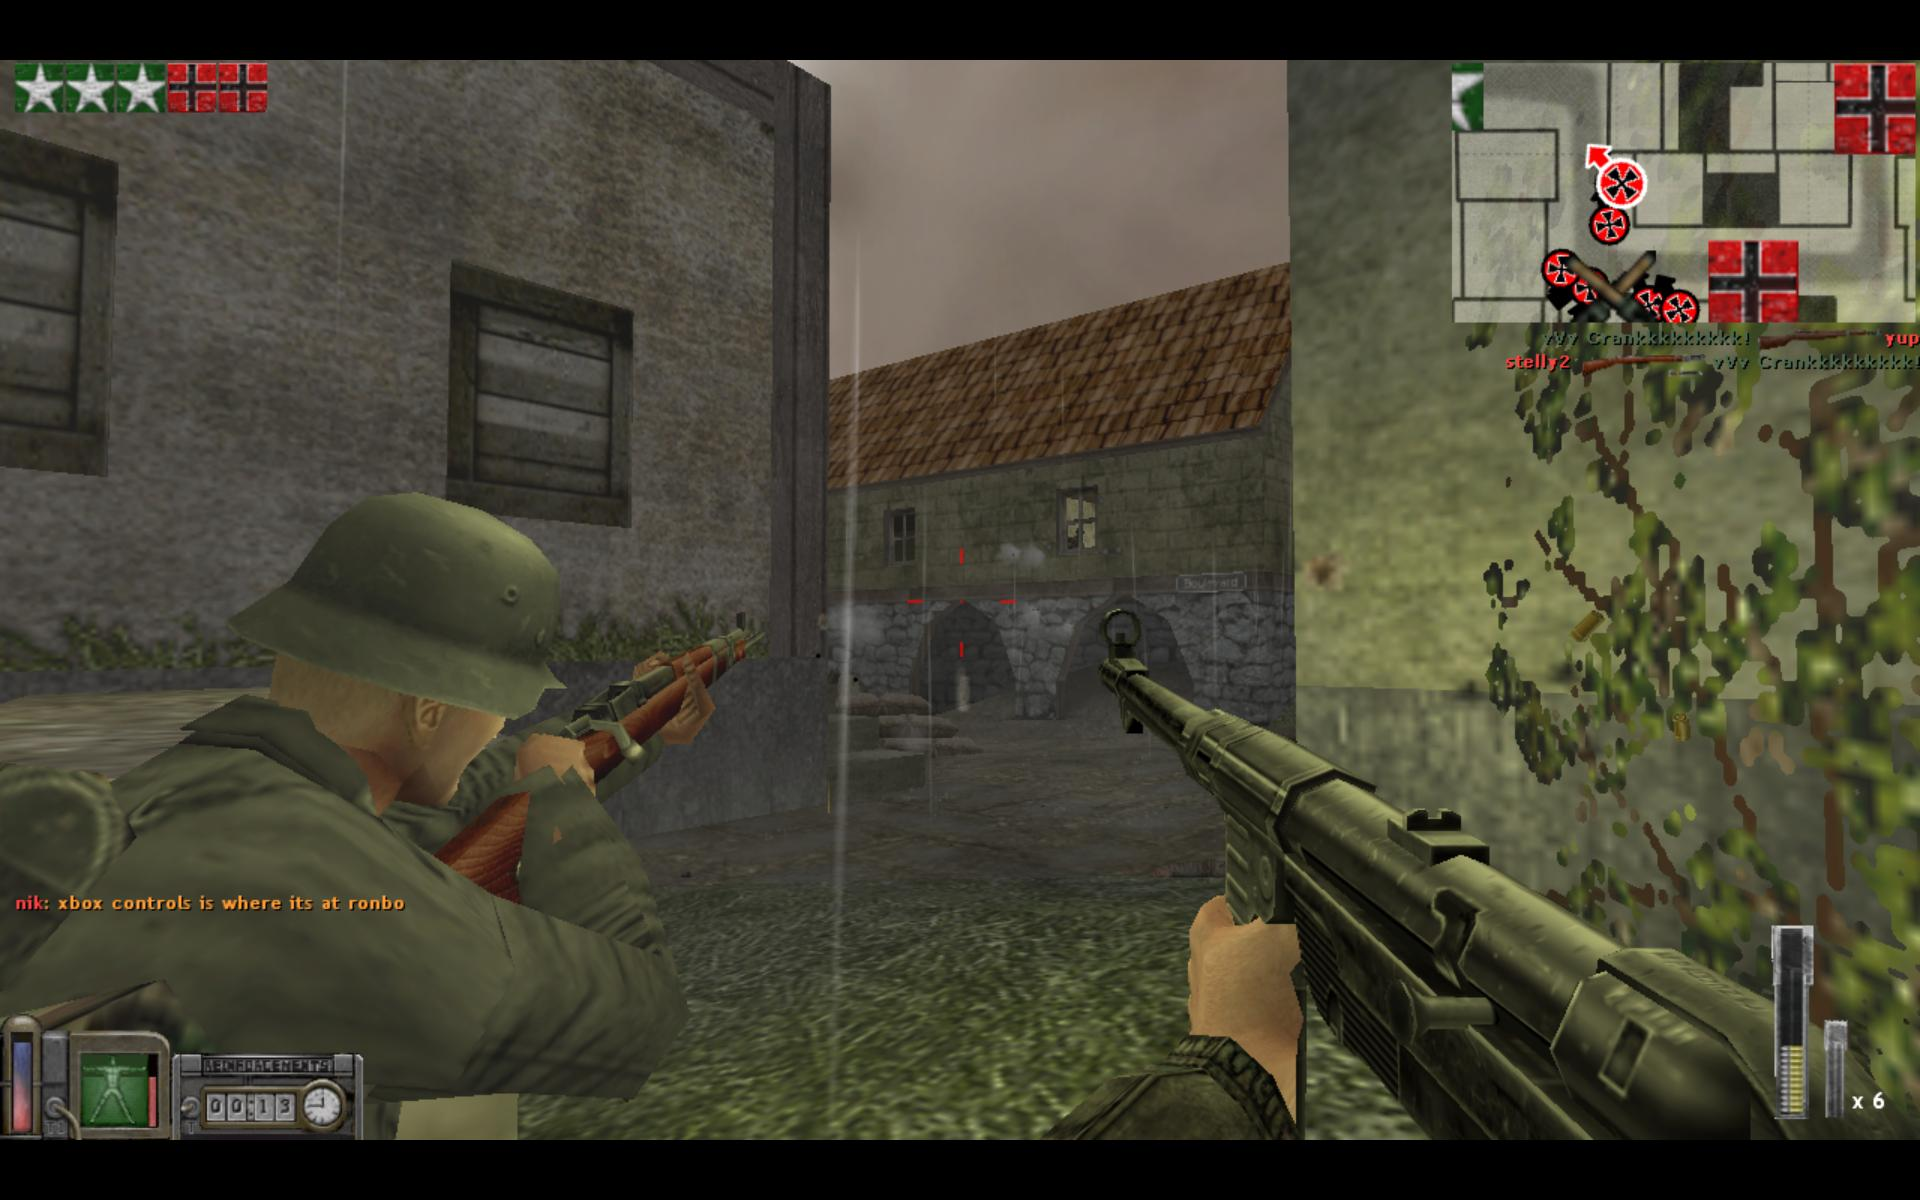 This is one of the first PC shooters I've played. I can't go back to it with ease because the control scheme is drastically different from most common FPS's these days.